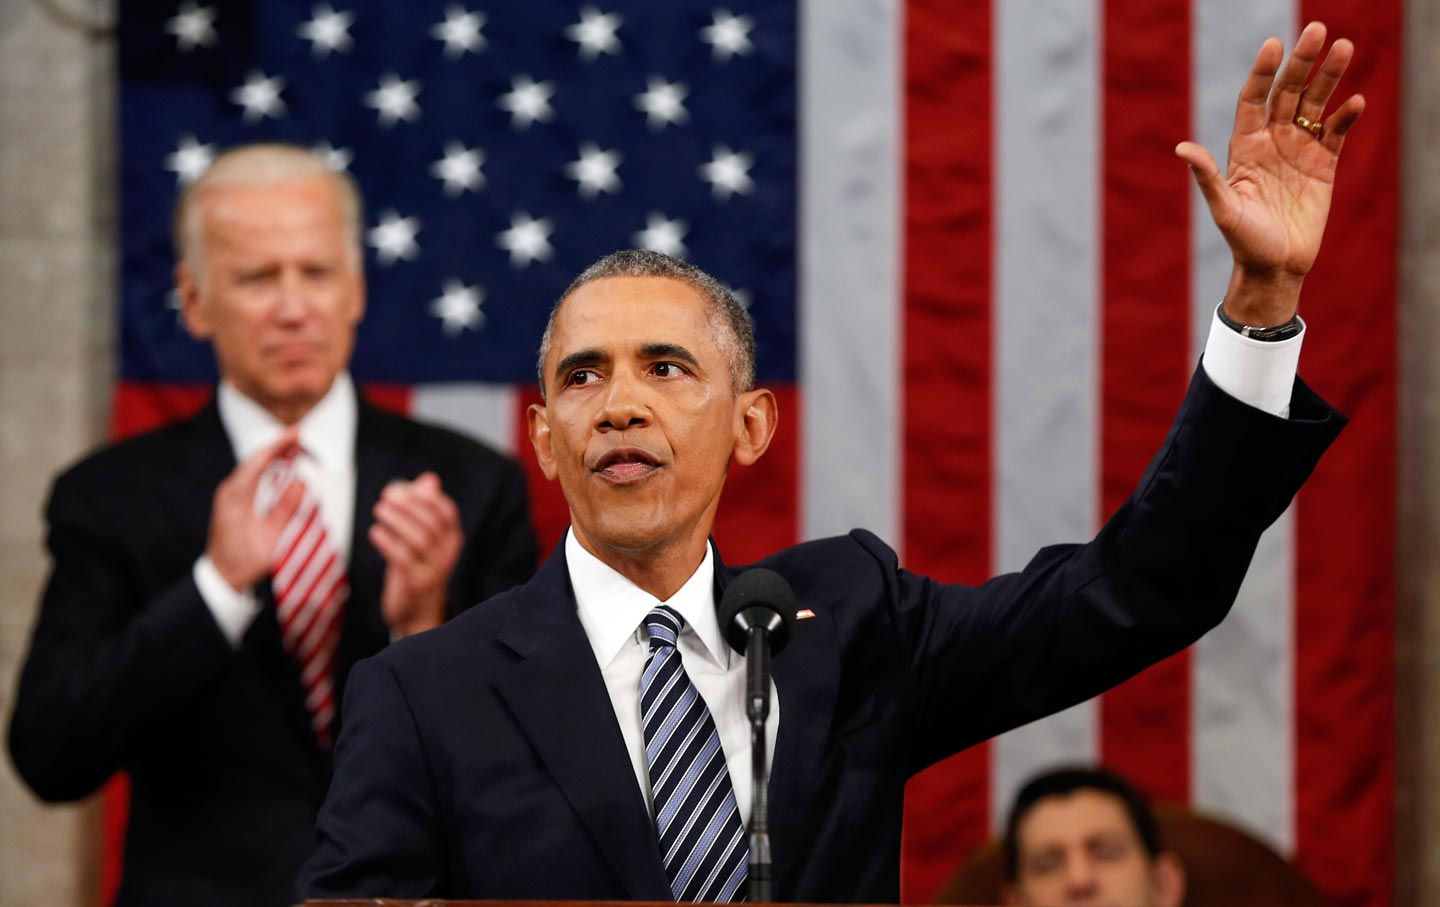 Obama waving at the SOTU